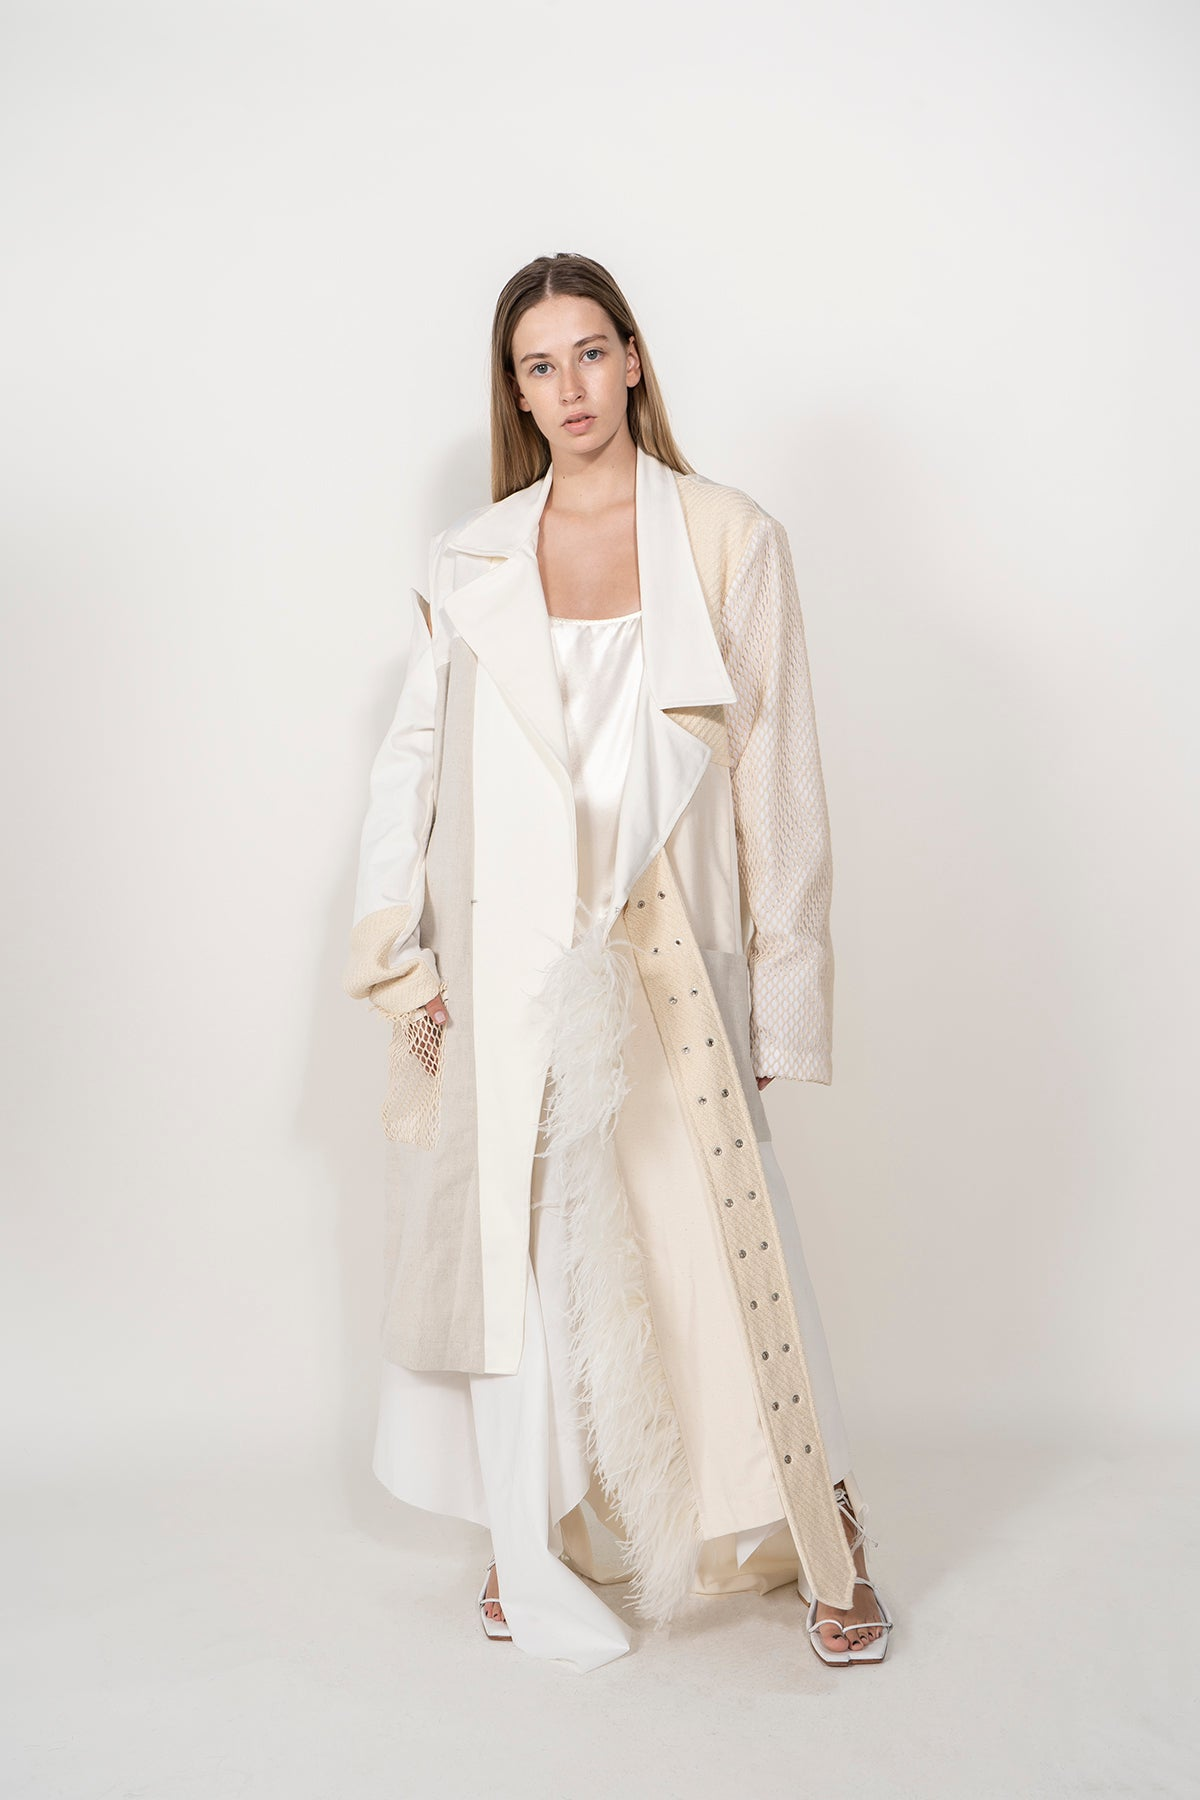 LONG DECONSTRUCTED WHITE PATCHWORK COAT